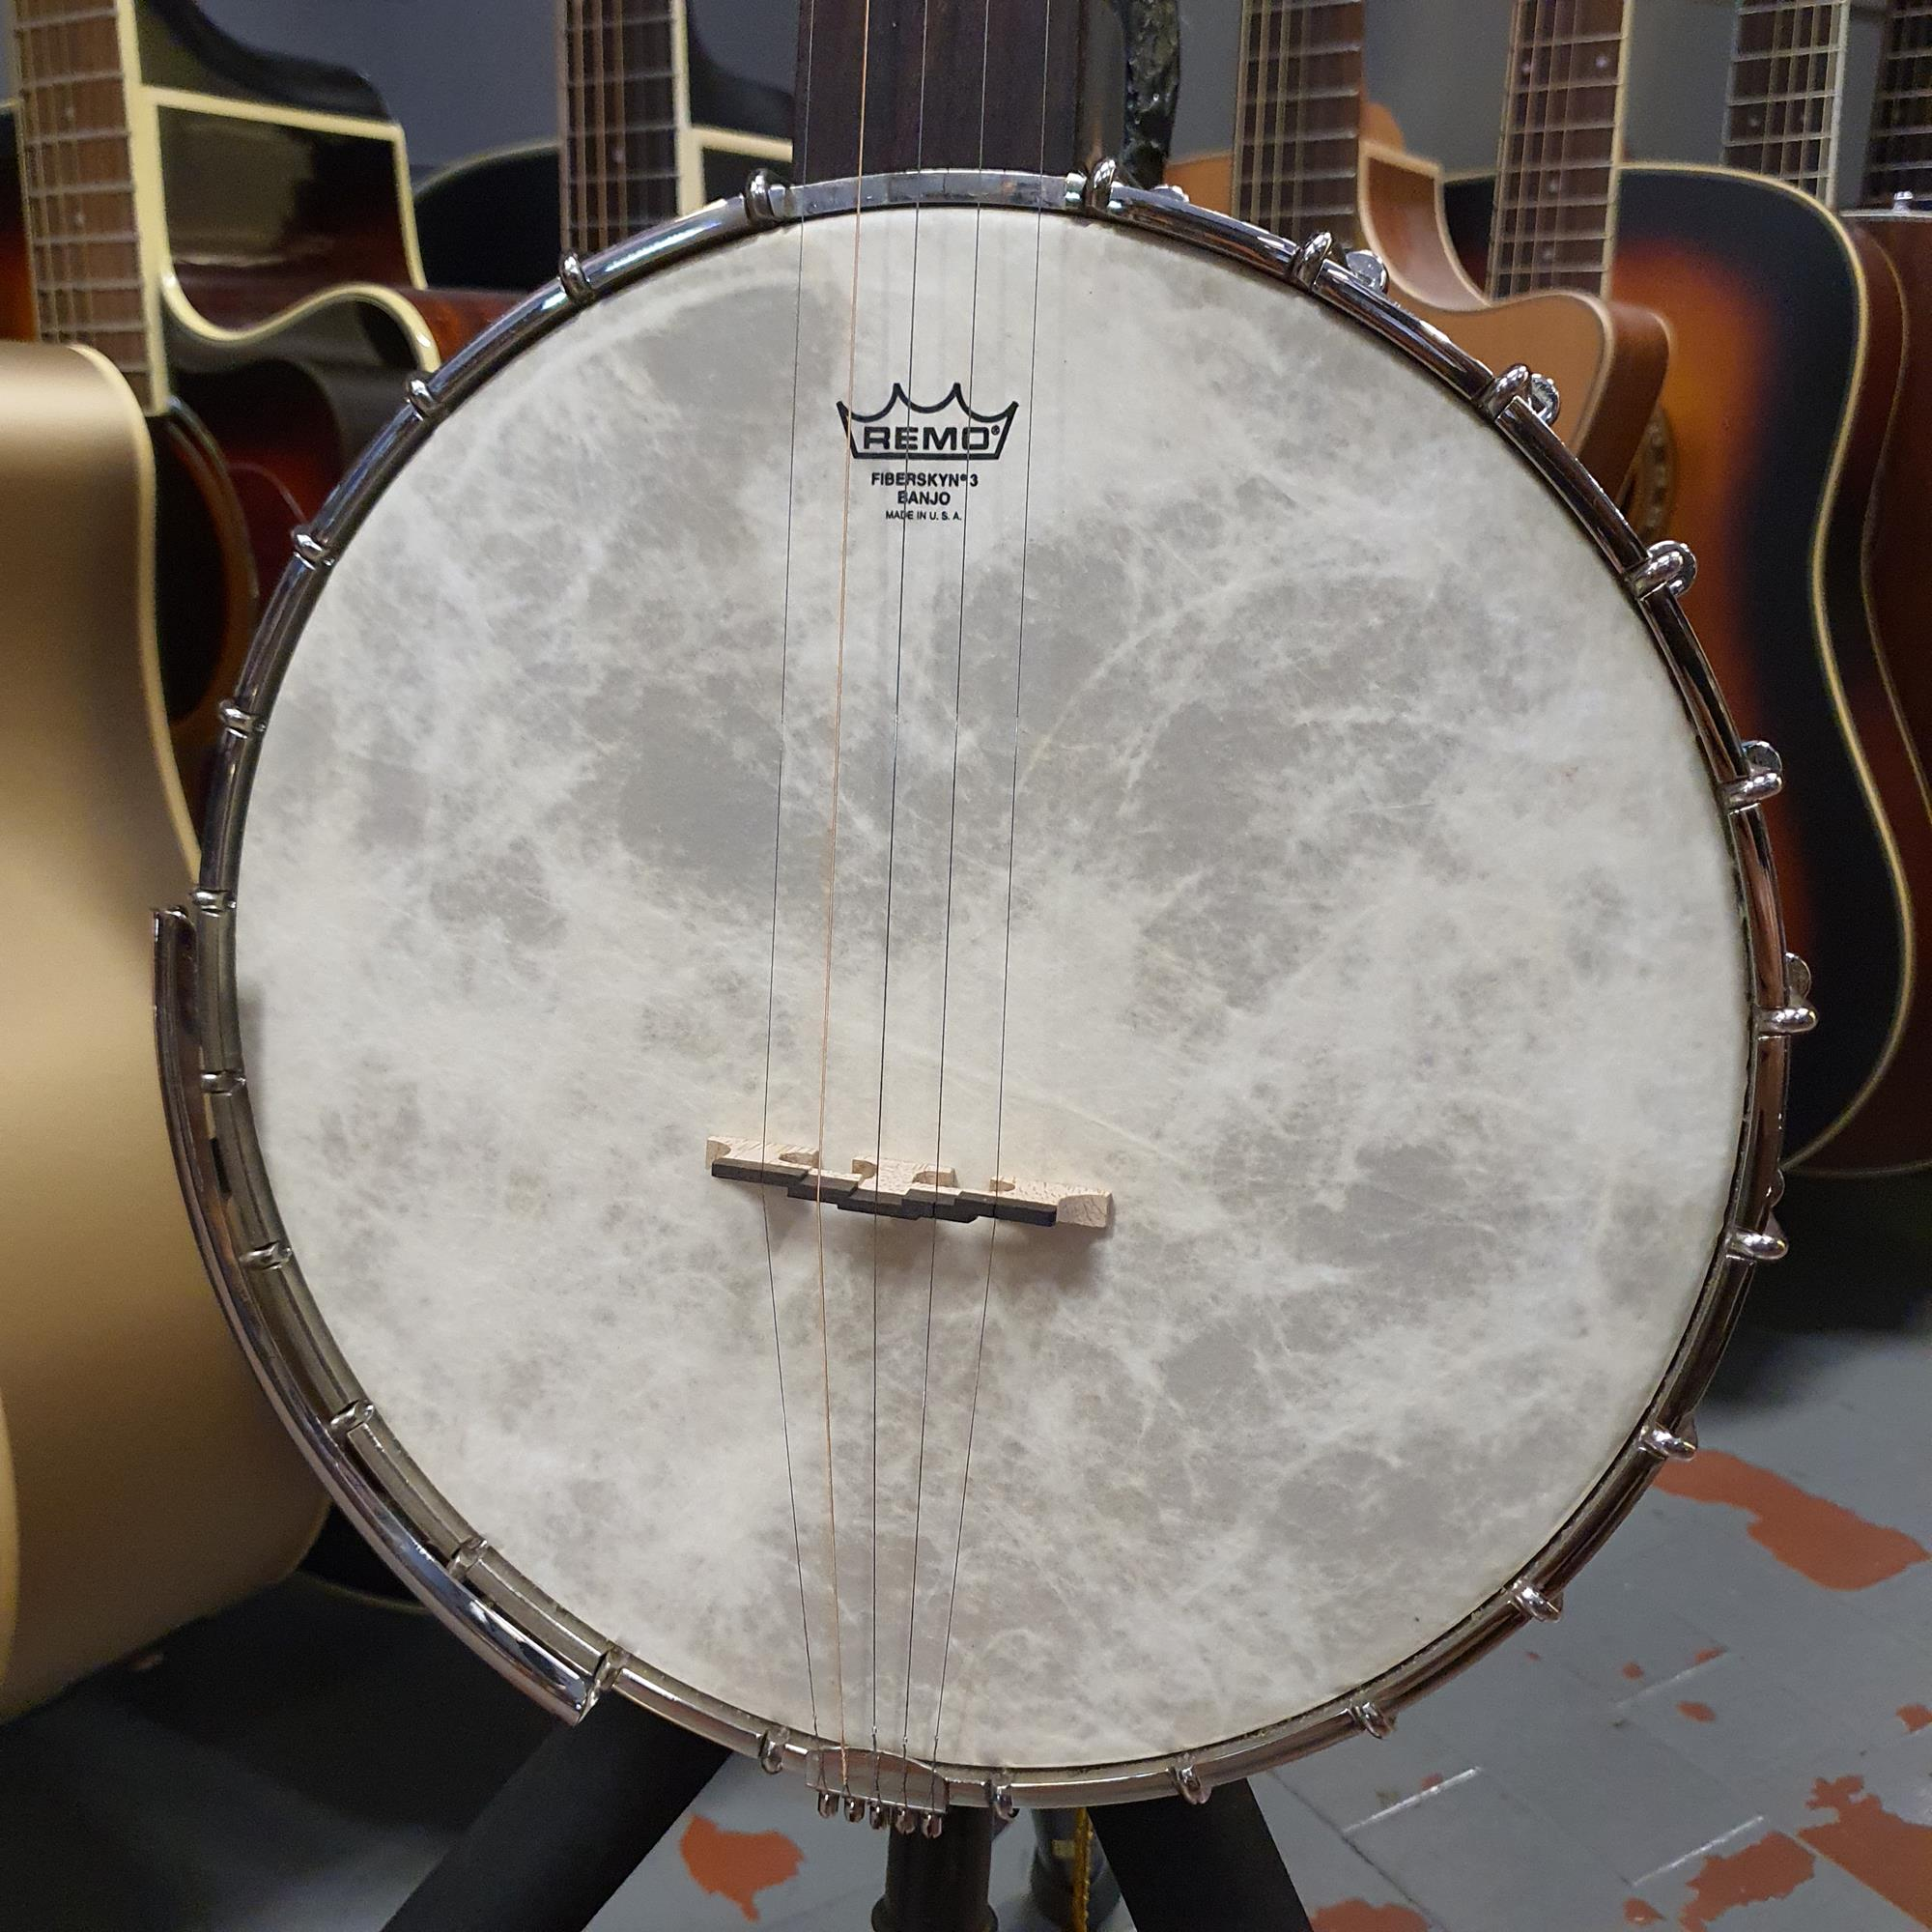 GRETSCH-G-9400-BANJO-OPEN-BACK-sku-1599315981754